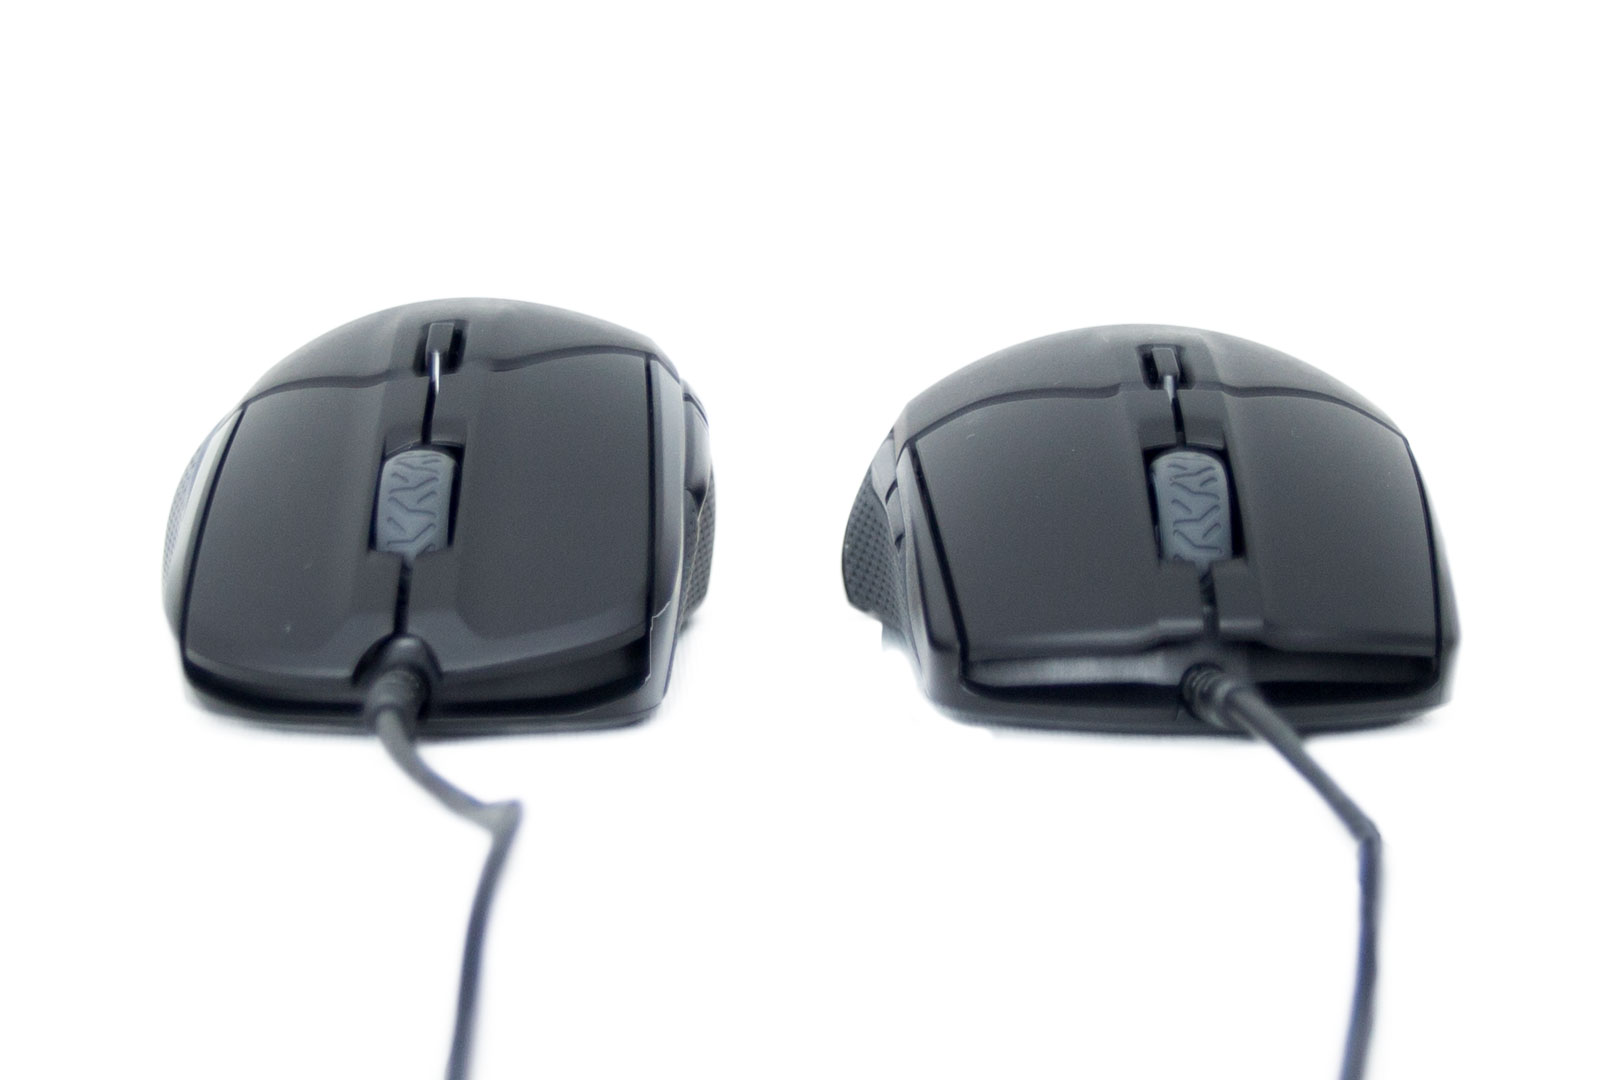 SteelSeries Rival 310 and Sensei 310 Reviews | bit-tech net